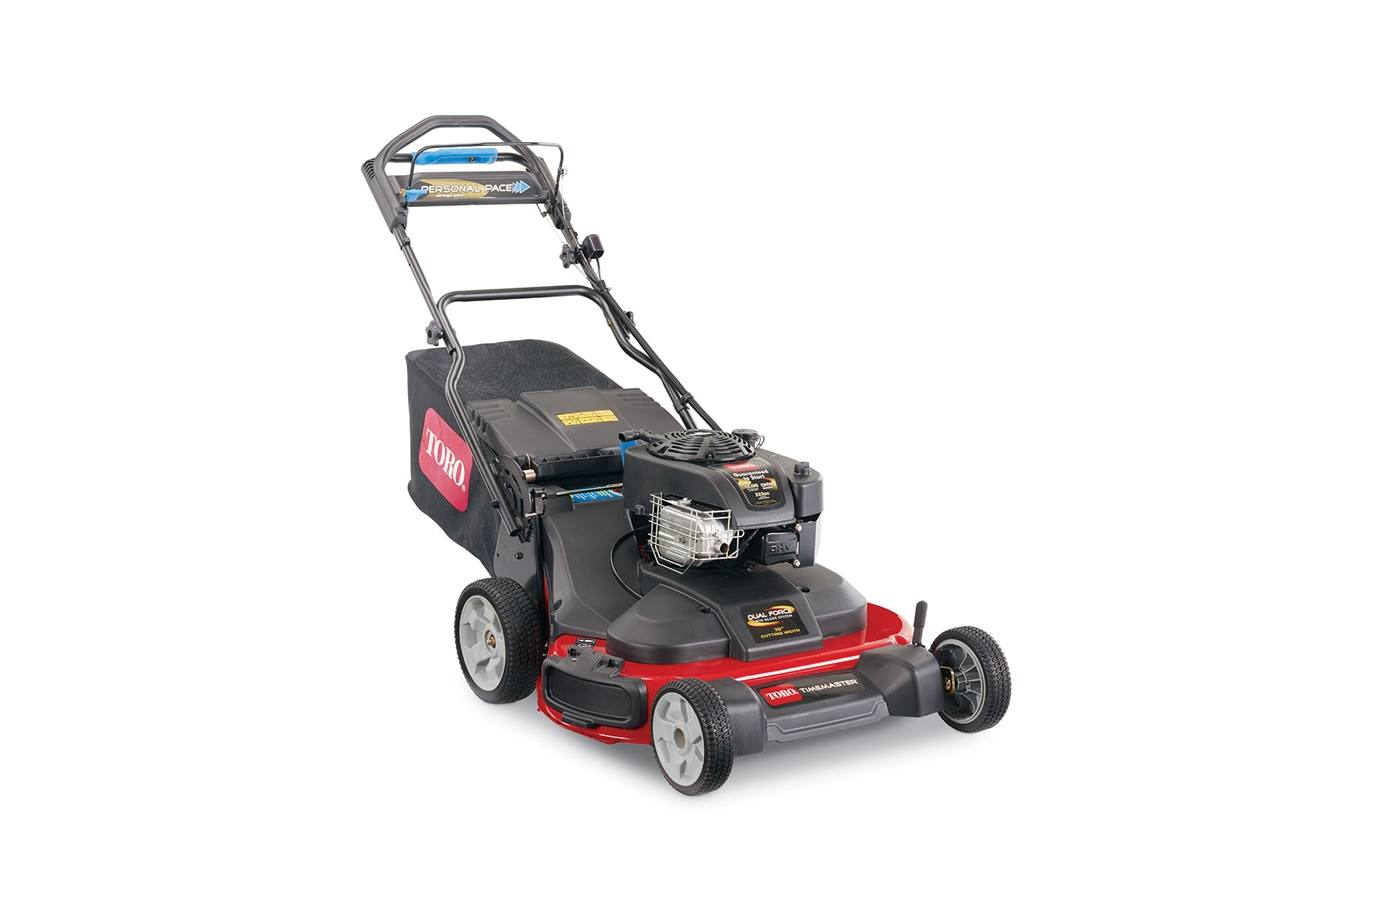 Toro 30 Personal Pace Timemaster Mower 21199 For Sale In Staten Island Ny Trimalawn Equipment Staten Island Ny 718 761 5166